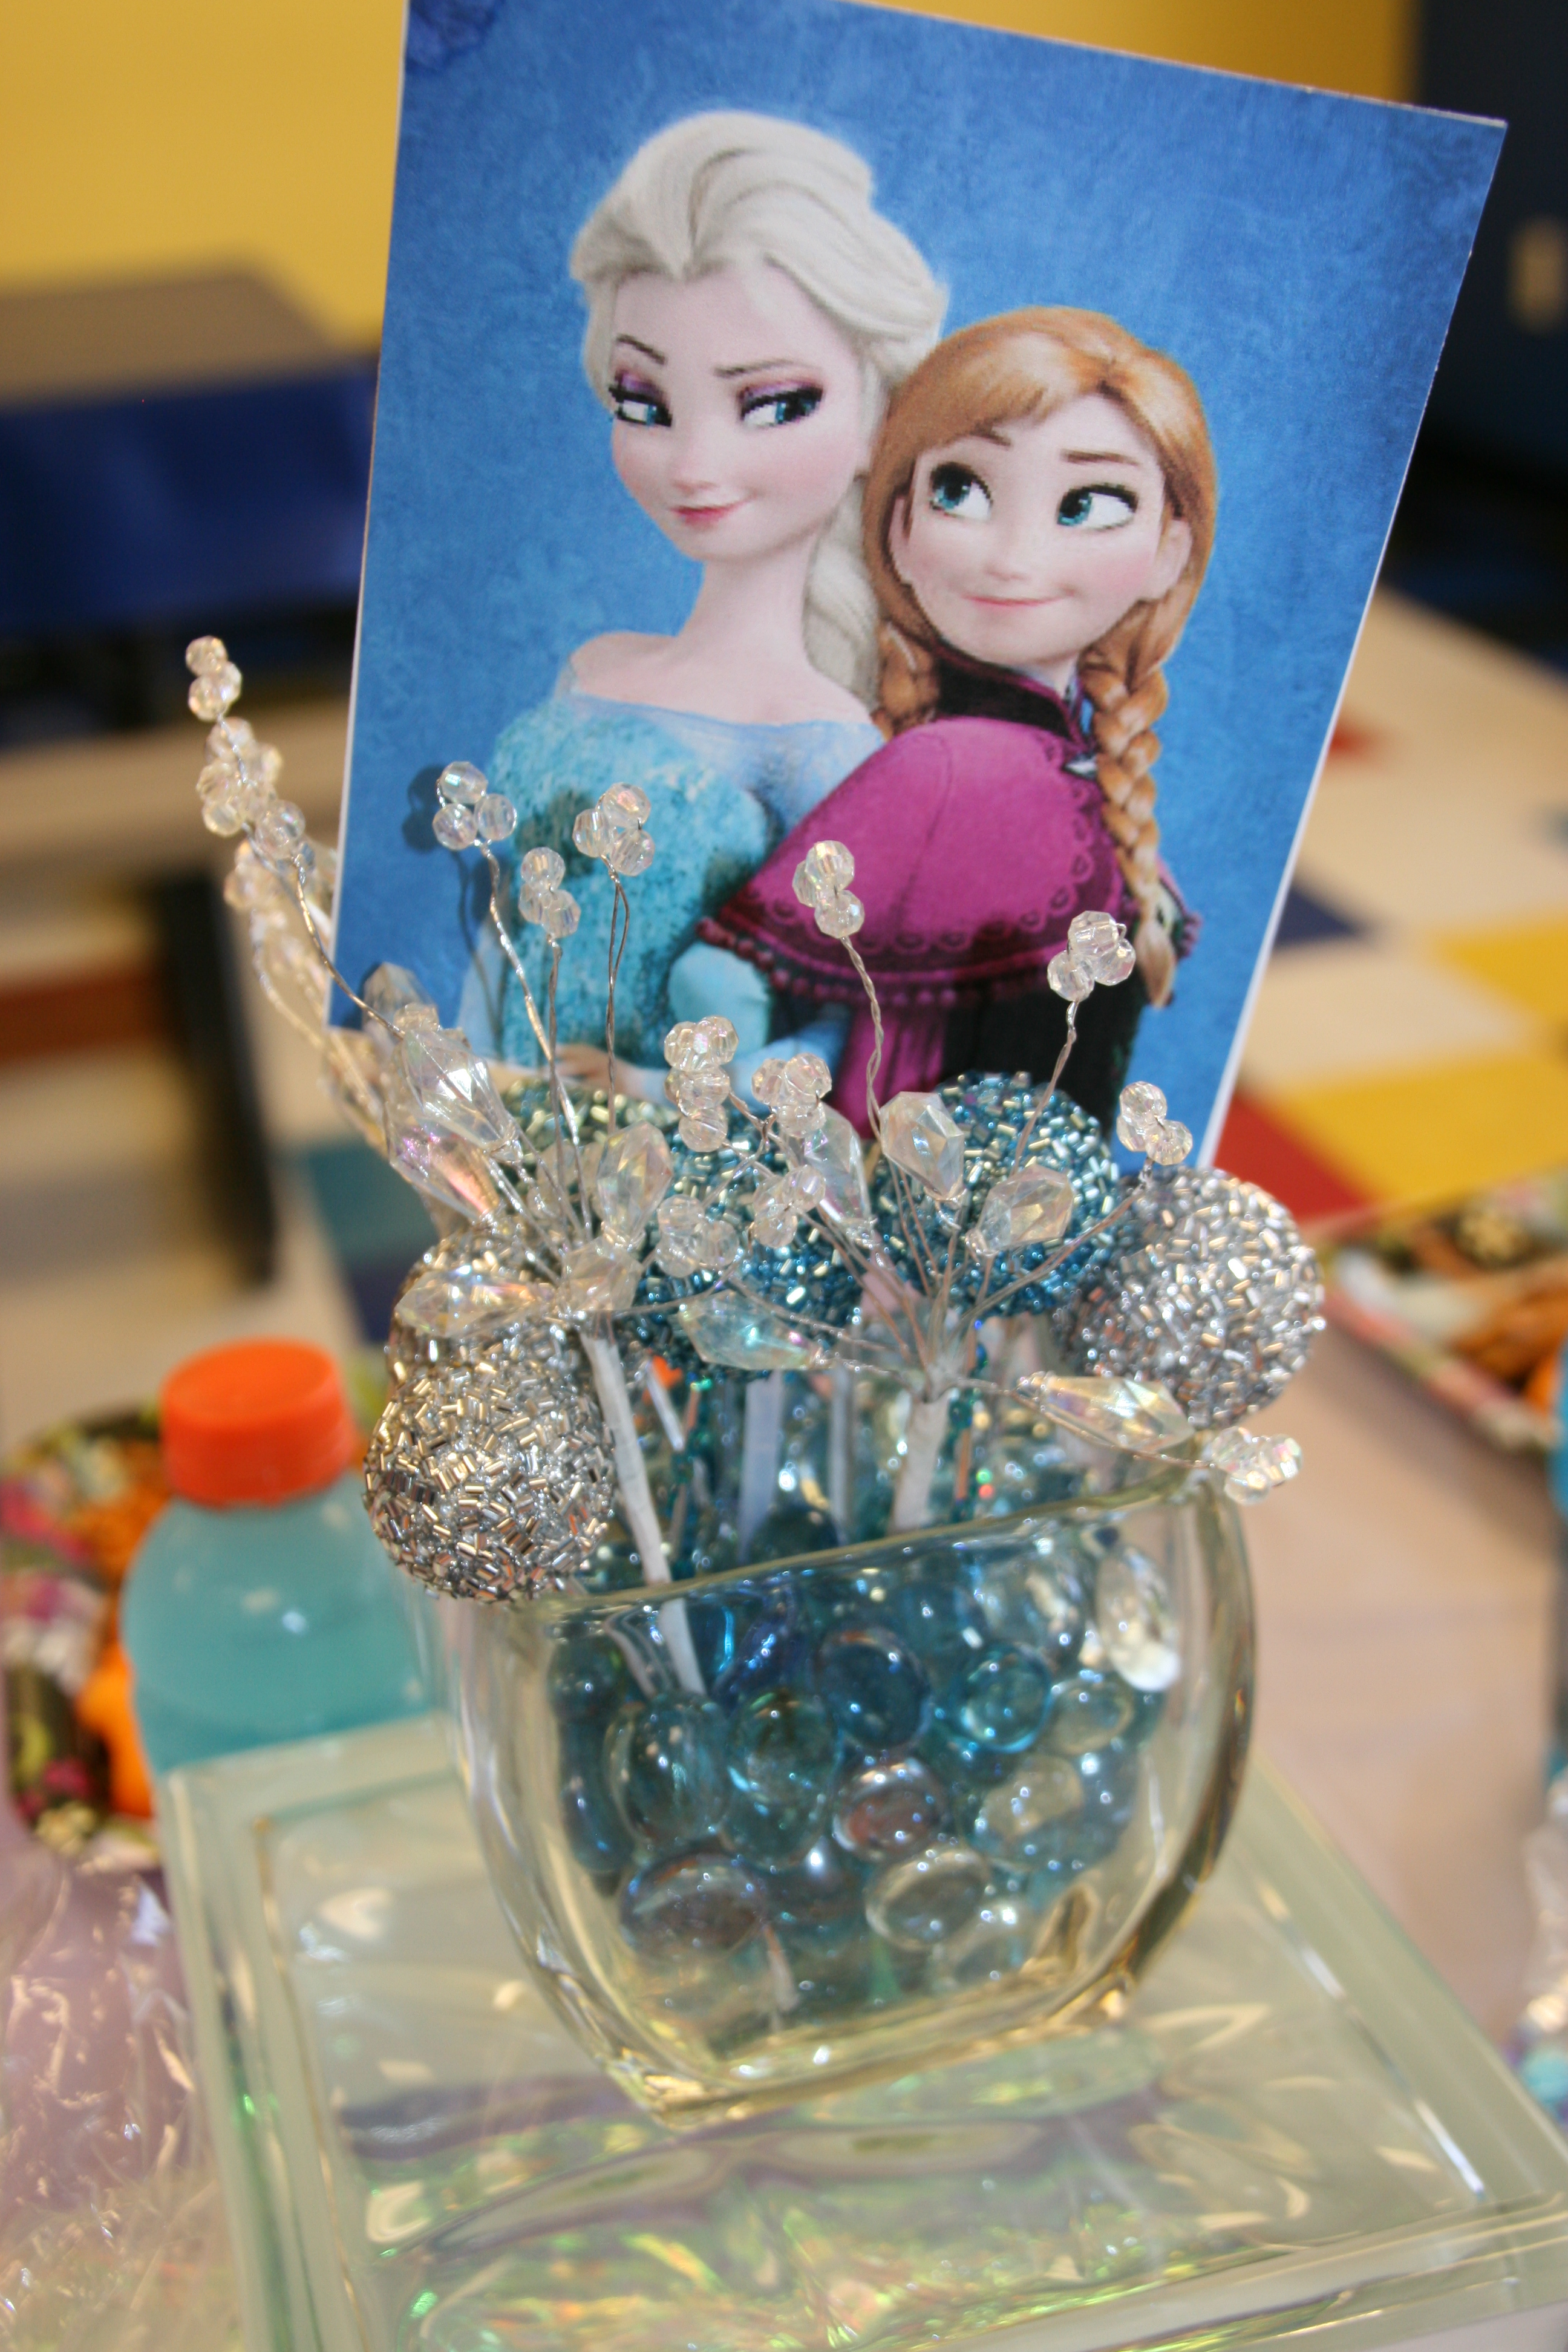 I Bought Glass Beads At Dollar Tree And Put Them In Square Vases Topped With Silver Blue Beaded Balls Picks That Looked Like Ice From Hobby Lobby